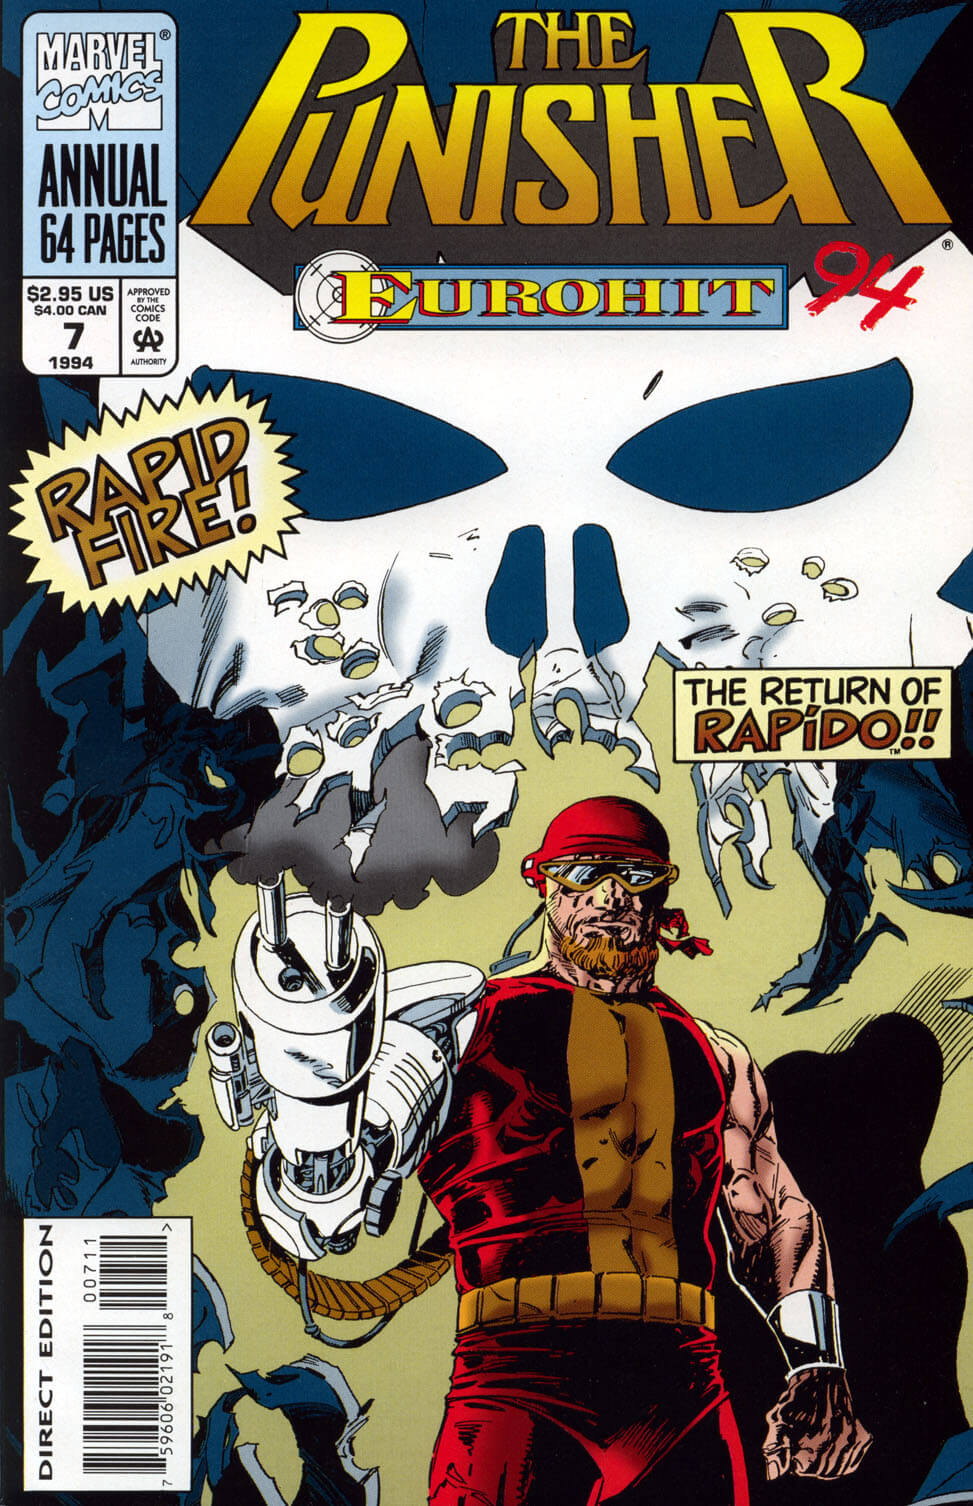 The Punisher v2 Annual #7